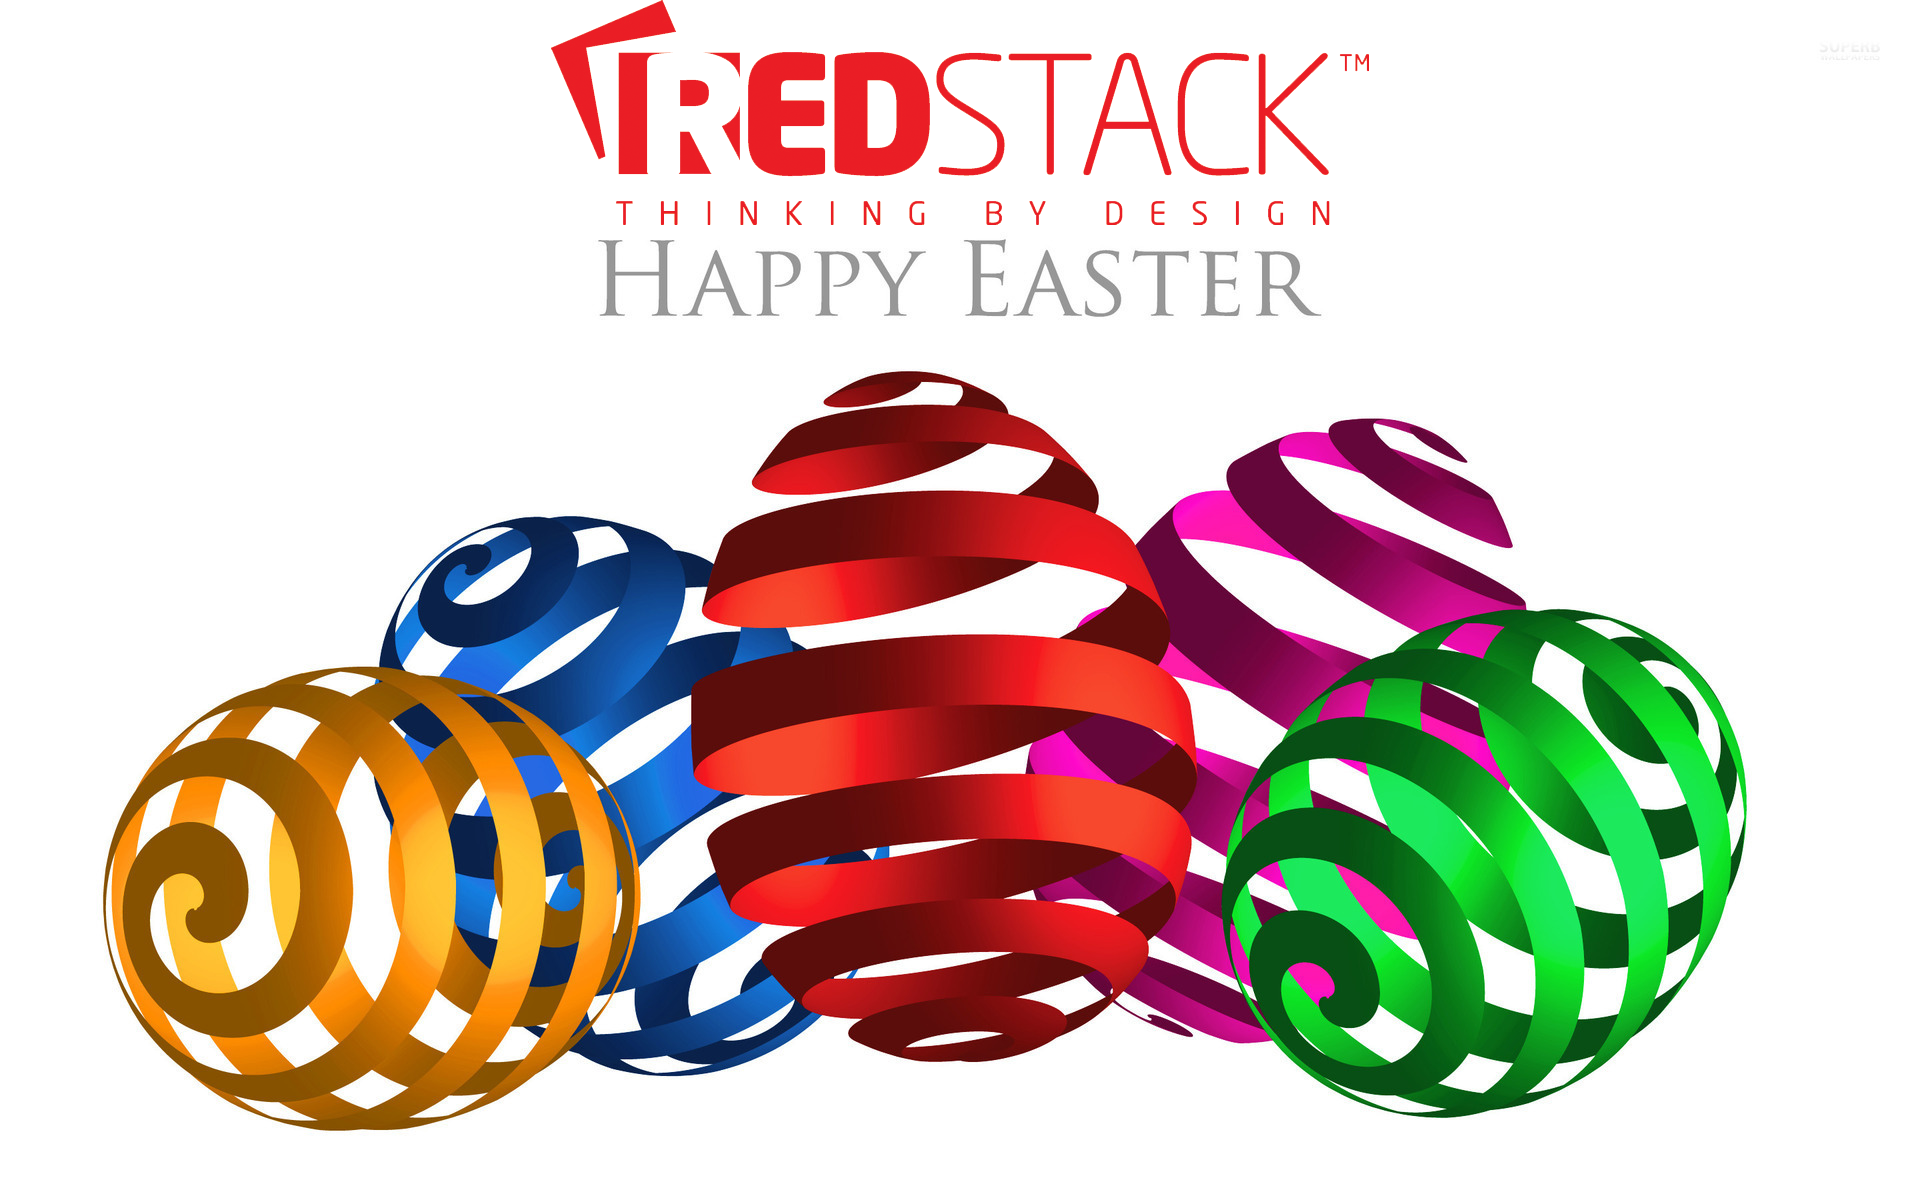 Happy Easter From Redstack To Get Into The Spirit Of Easter We Ve Collected And Listed Our Top 5 Eas Happy Easter Wallpaper Easter Wallpaper Easter Greetings